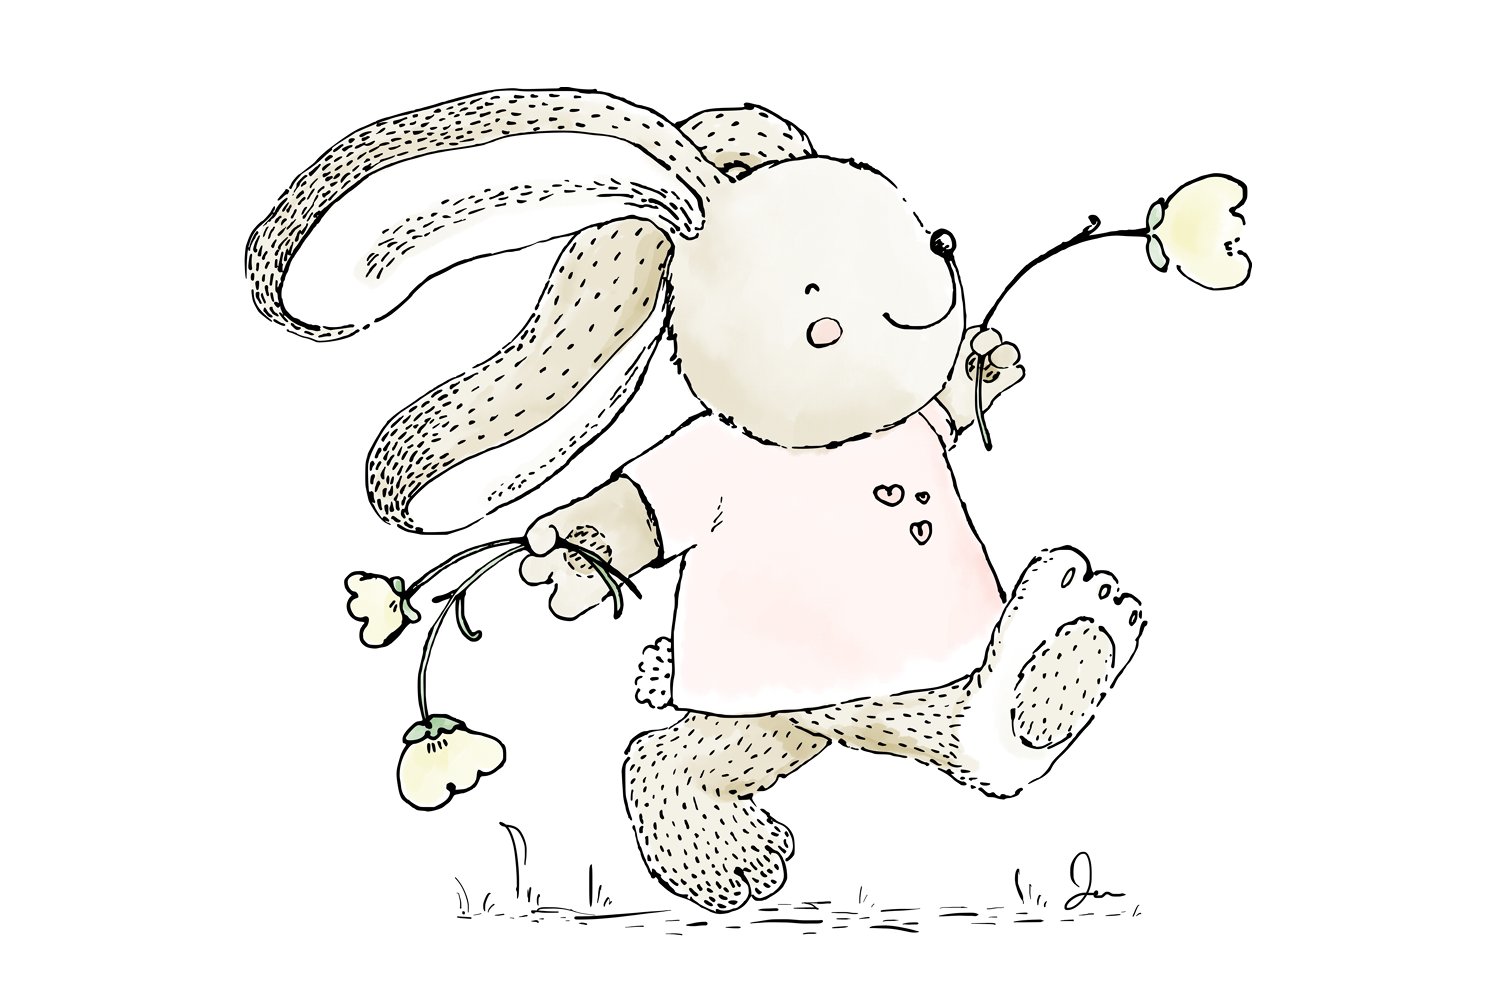 Cute 'Rabbit Skipping with Flowers'   Clip Art Illustration example image 2